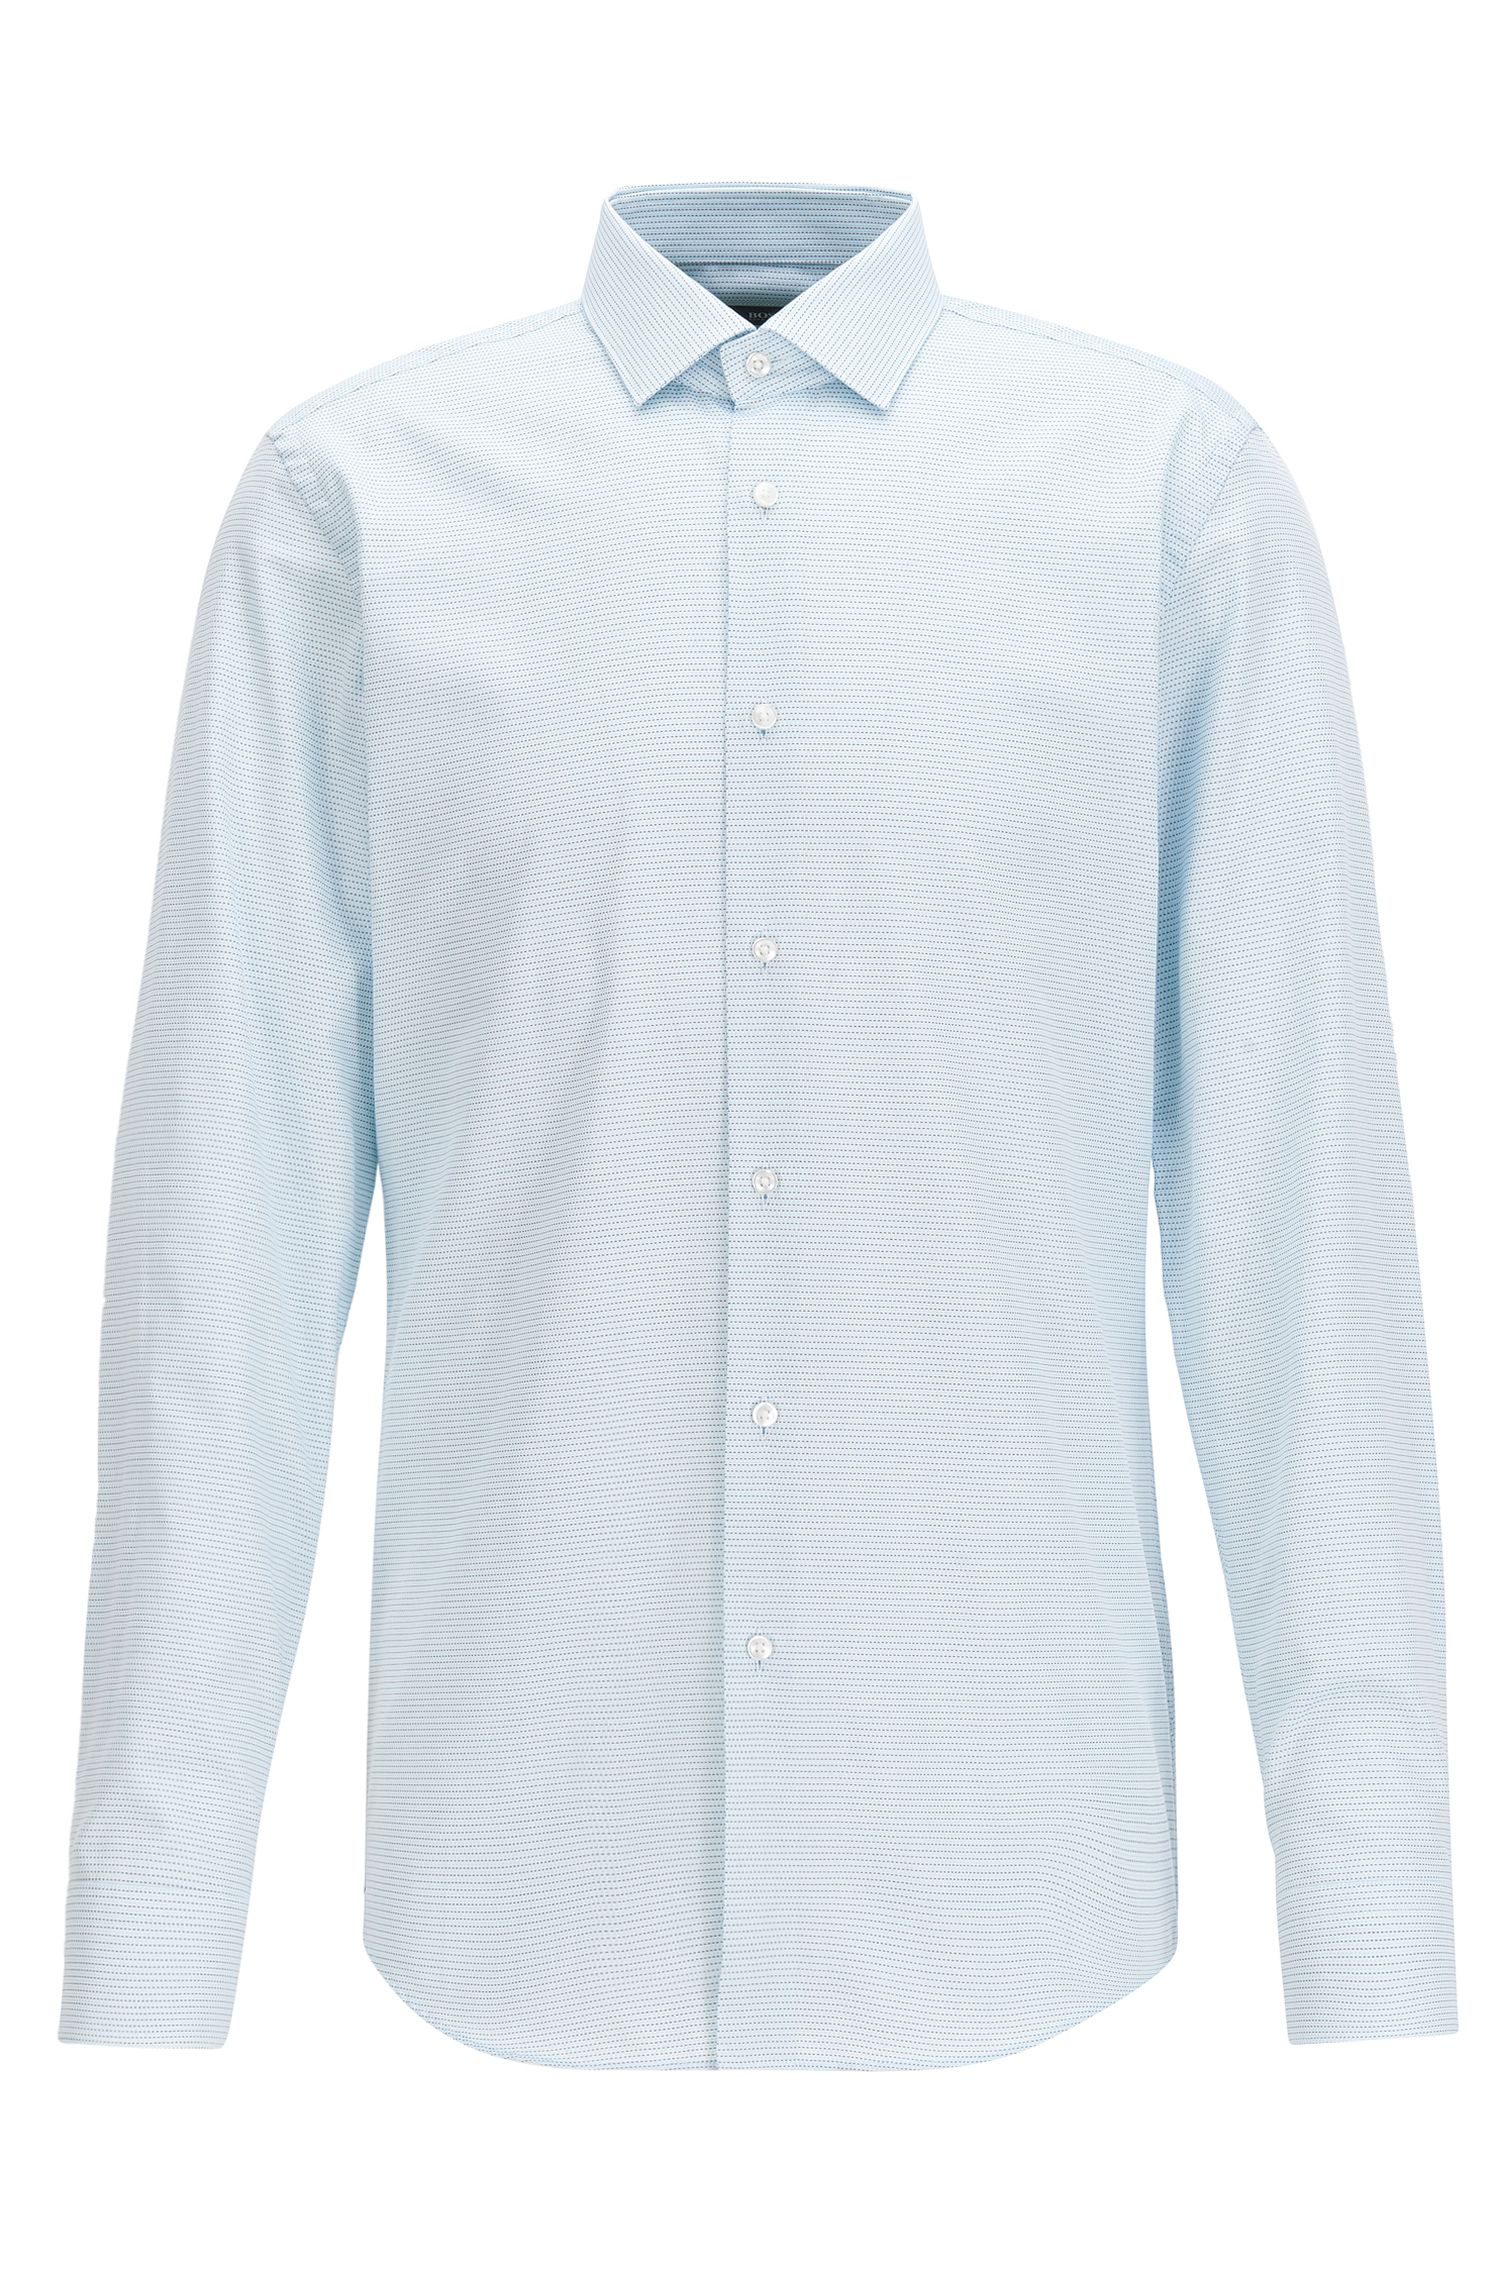 Micro-Pattern Cotton Dress Shirt, Slim Fit | Ismo